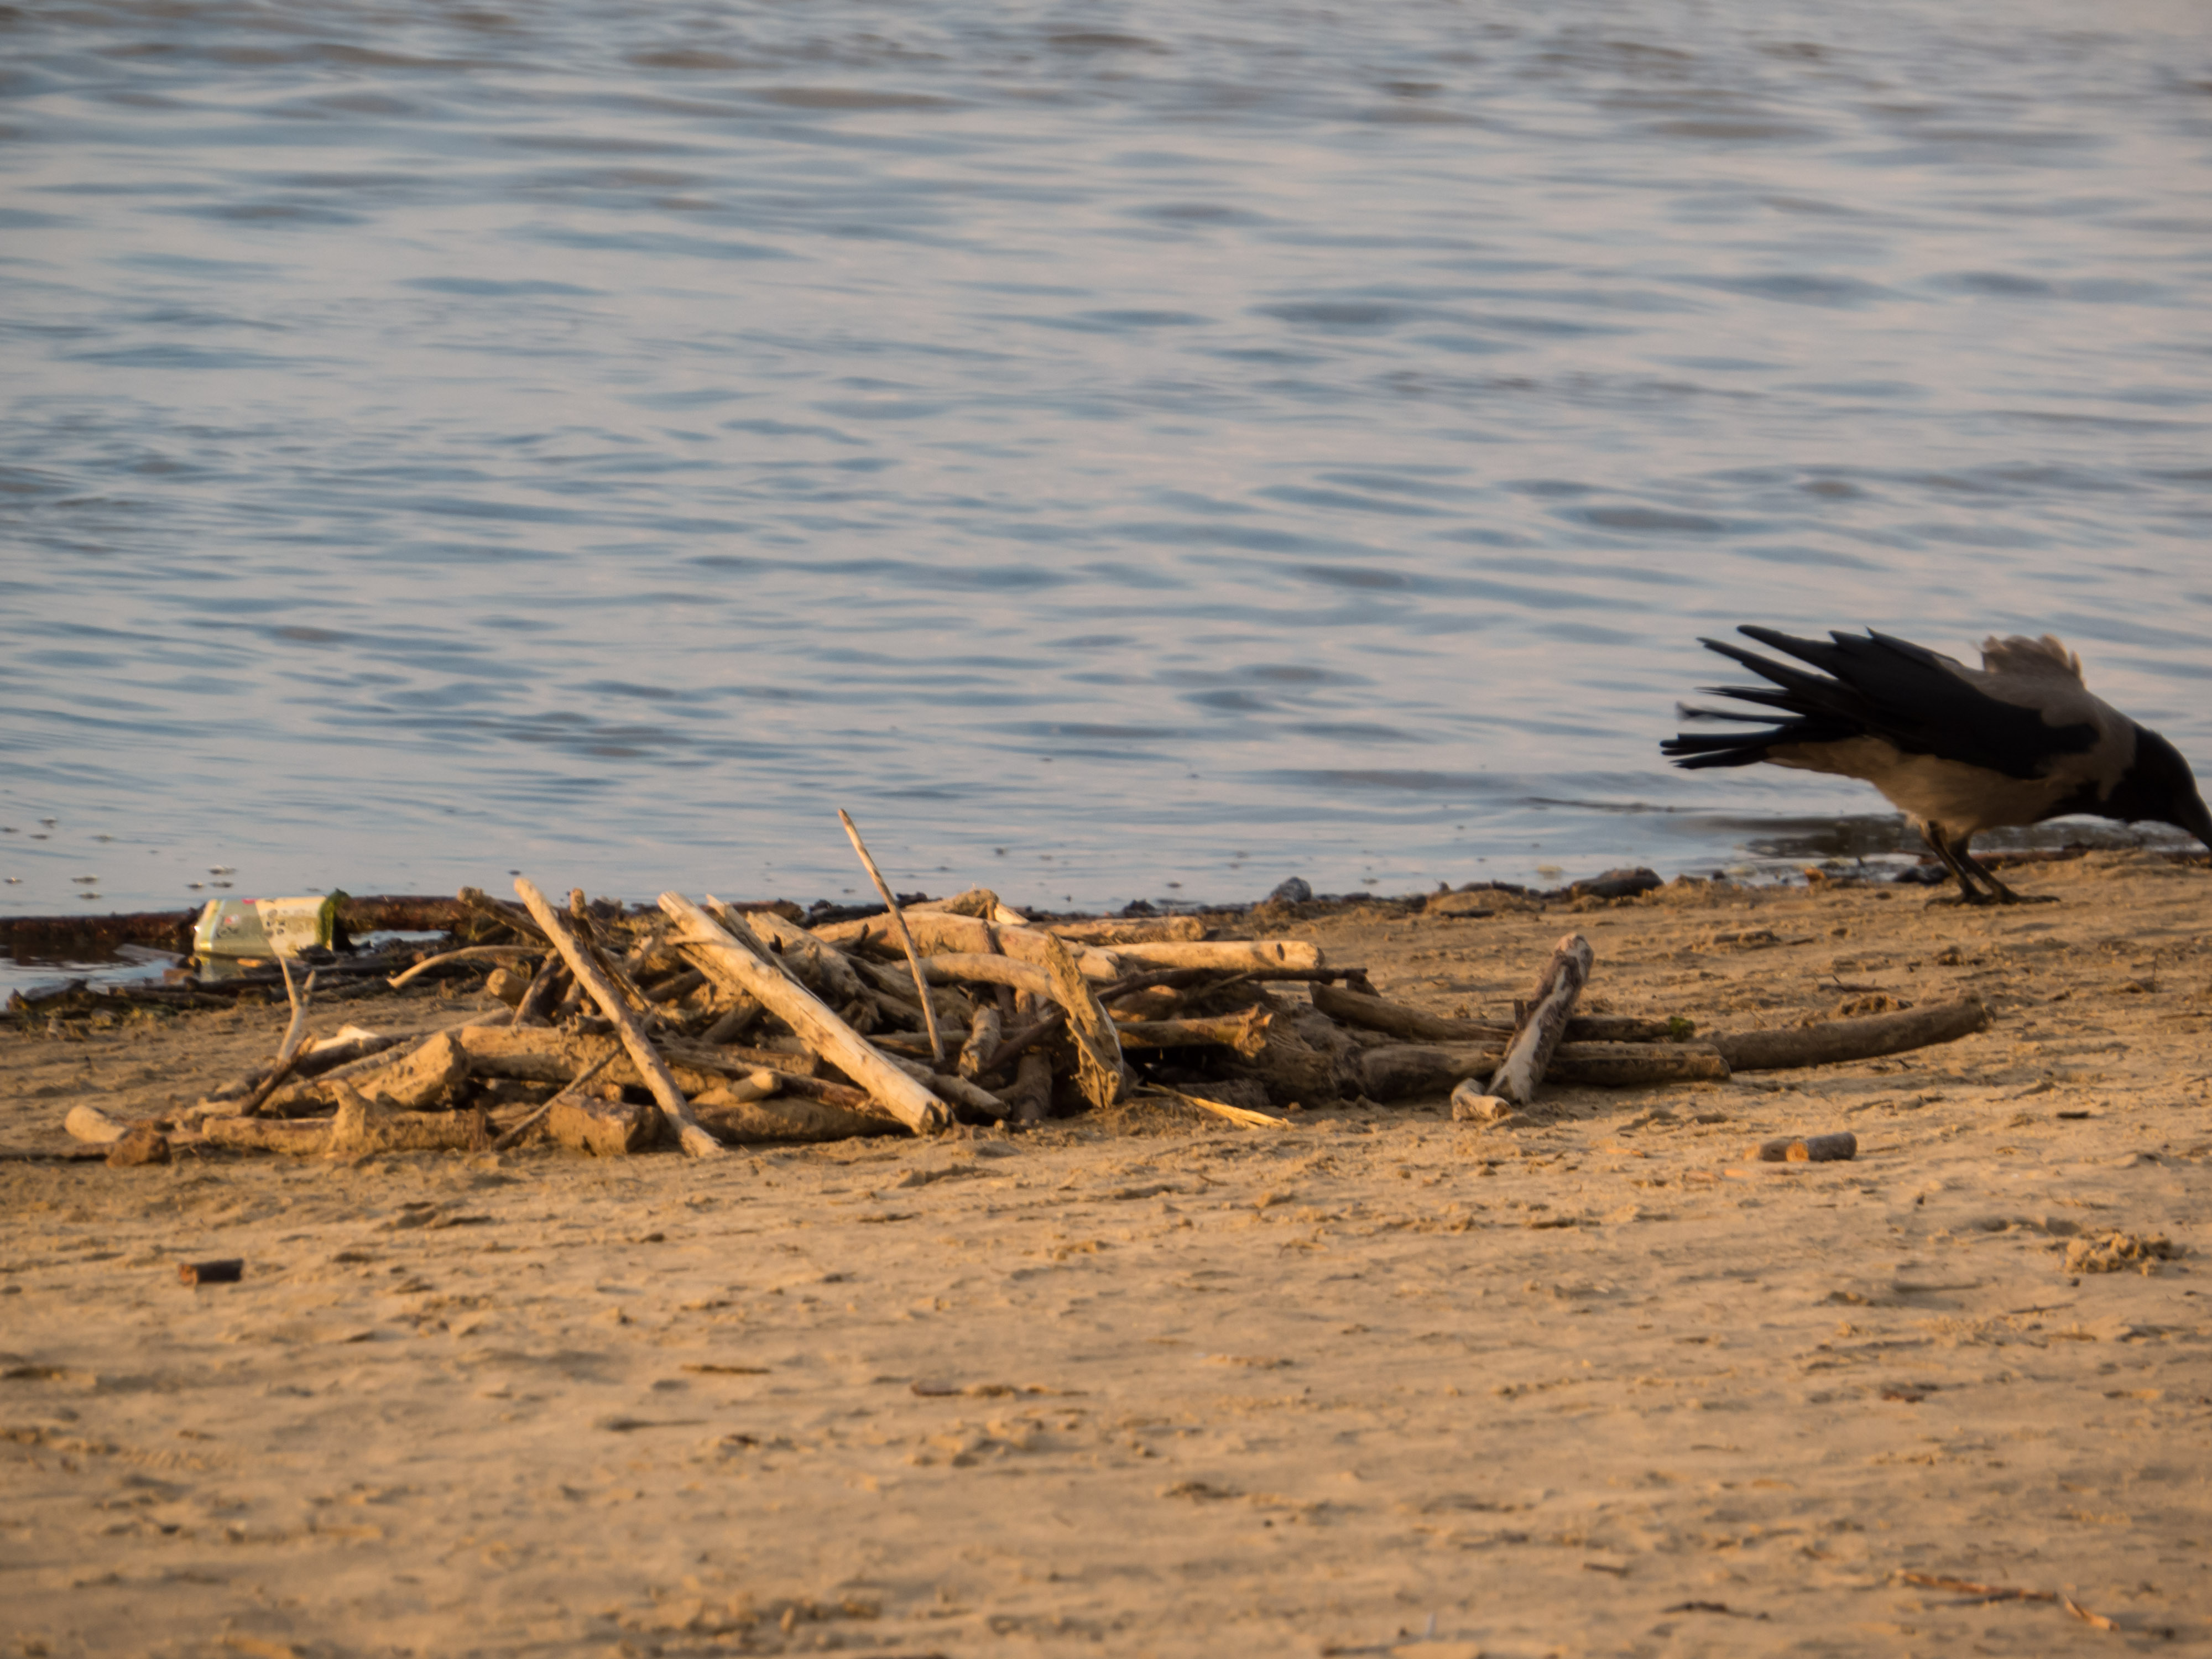 Crow on the beach, Wood, Rocks, Water, Stack, HQ Photo